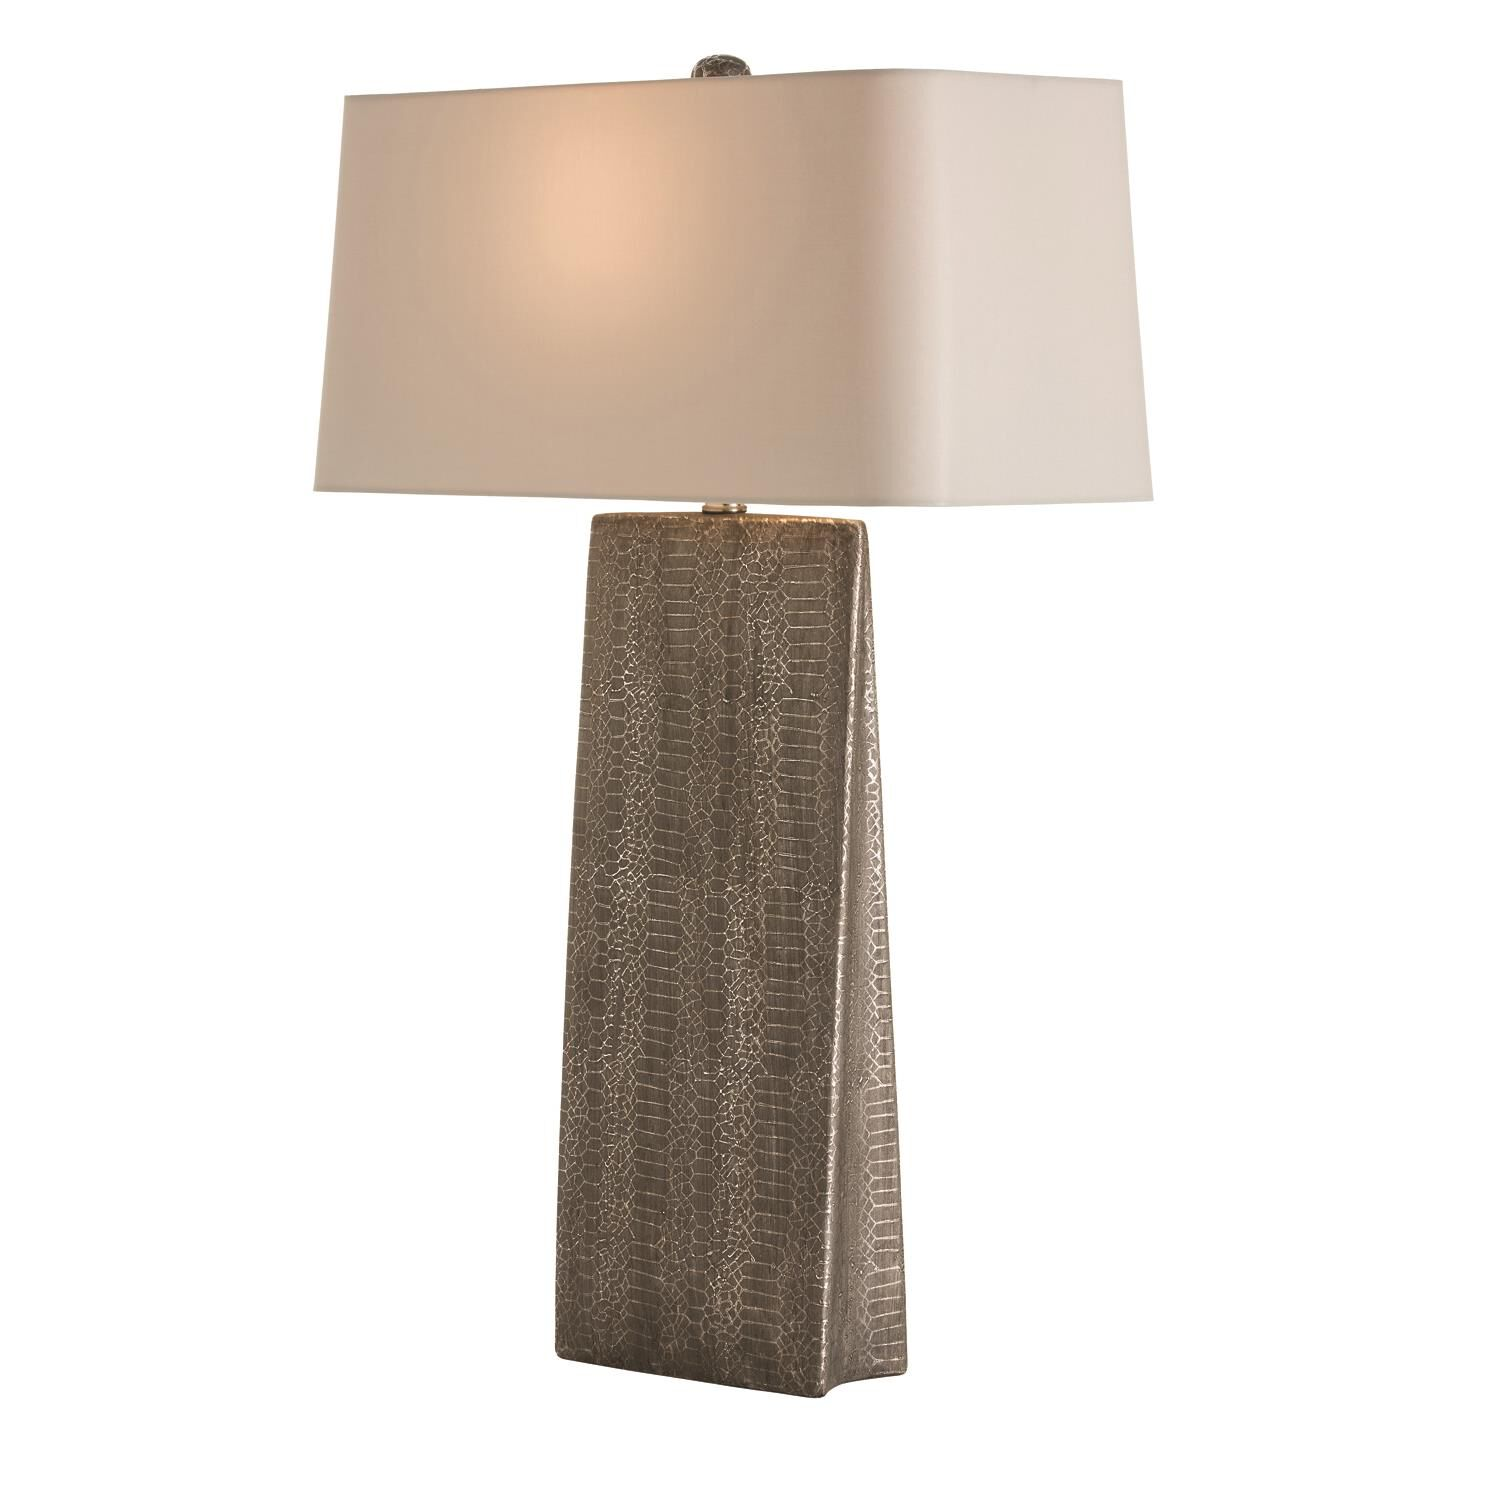 Arteriors Home Ravi Table Lamp Ravi - 17100-262 - Transitional Table Lamp